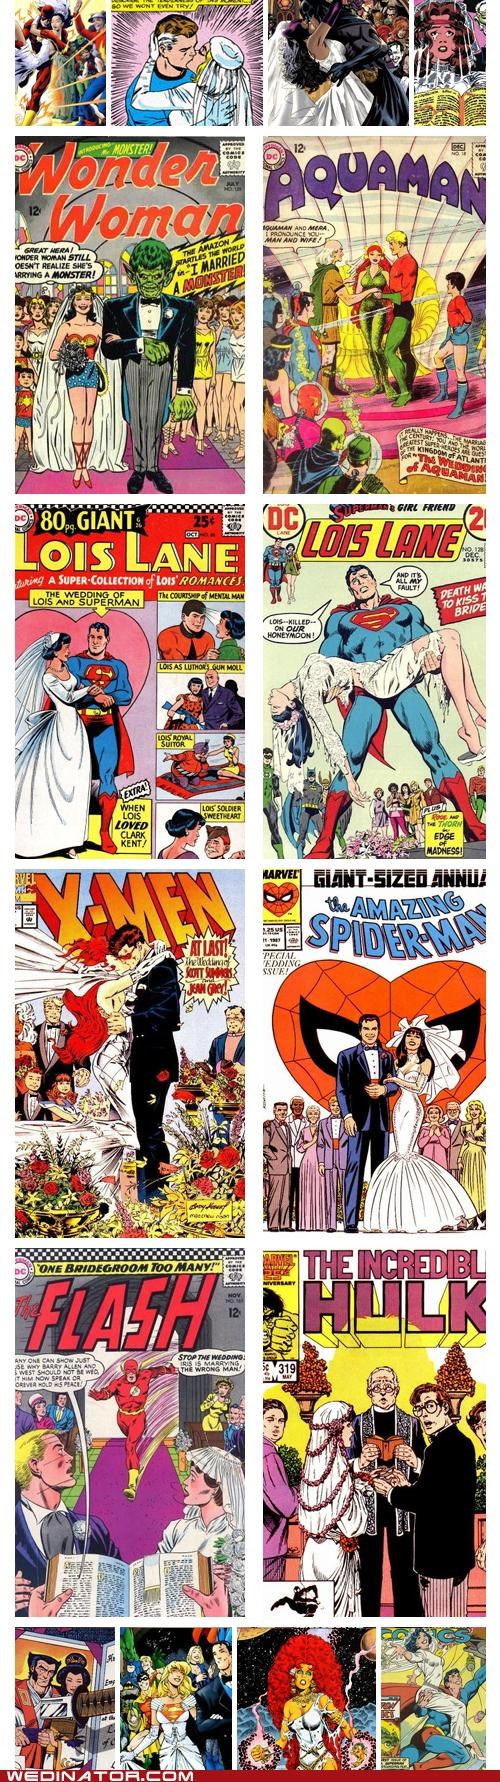 batman,comic books,comics,funny wedding photos,Hall of Fame,Spider-Man,superheroes,superman,x men